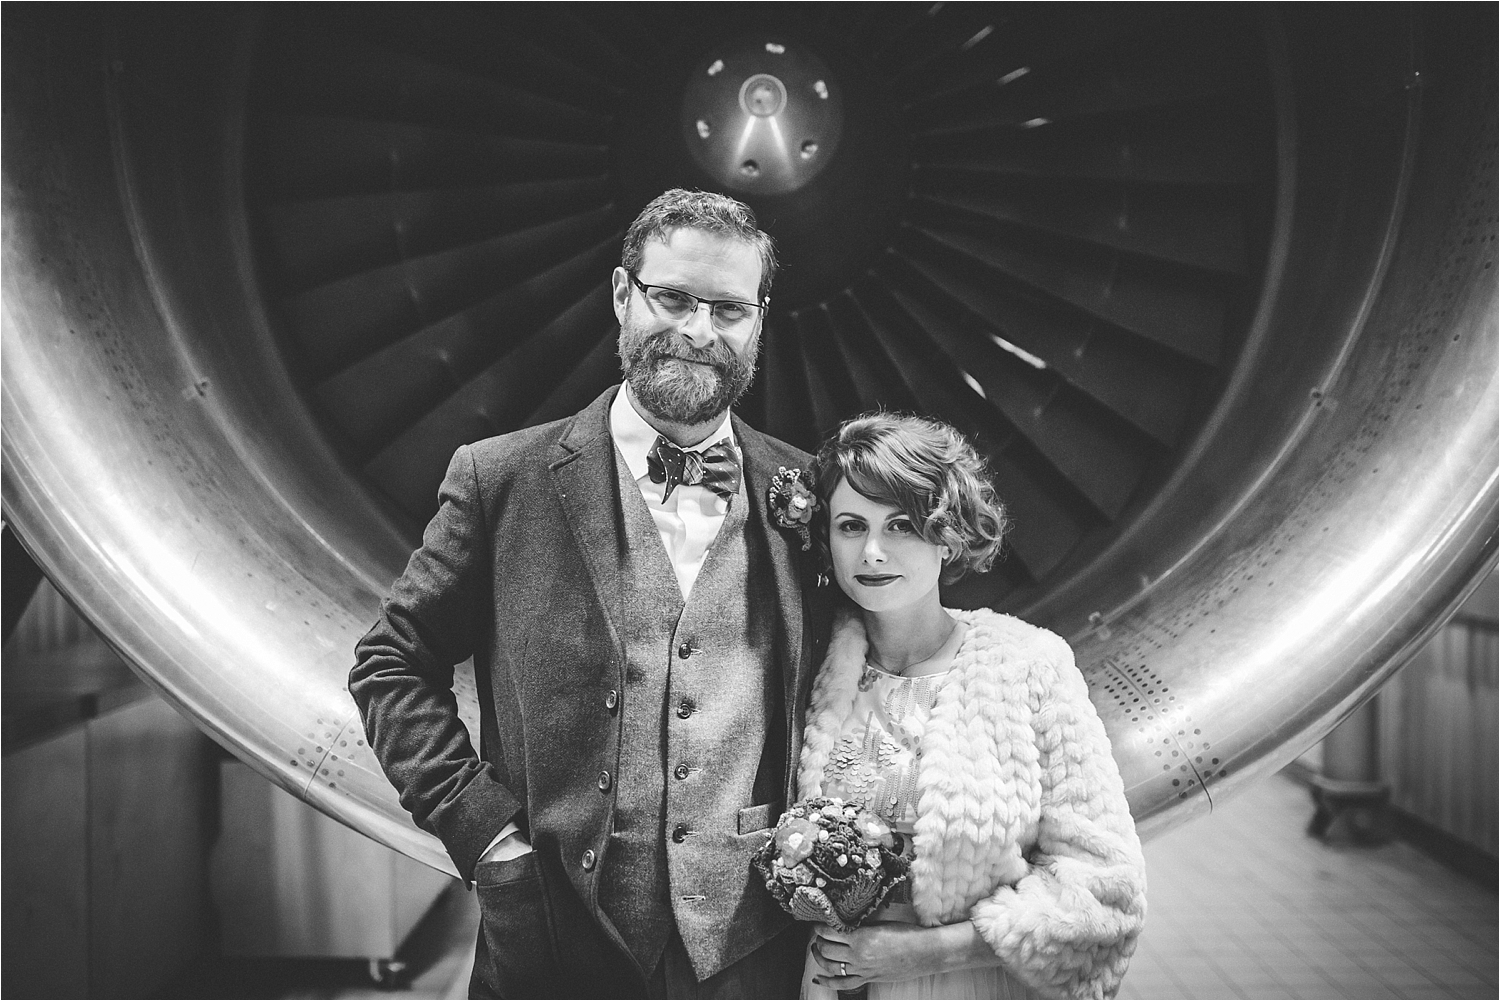 Victoria-Ben-The-West-Mill-darley-abbey-natural-relaxed-documentary-wedding-photography-photographer-Derby-Nottingham-Derbyshire-Nottinghamshire-Leicestershire-Lincolnshire-East-Midlands_0165.jpg